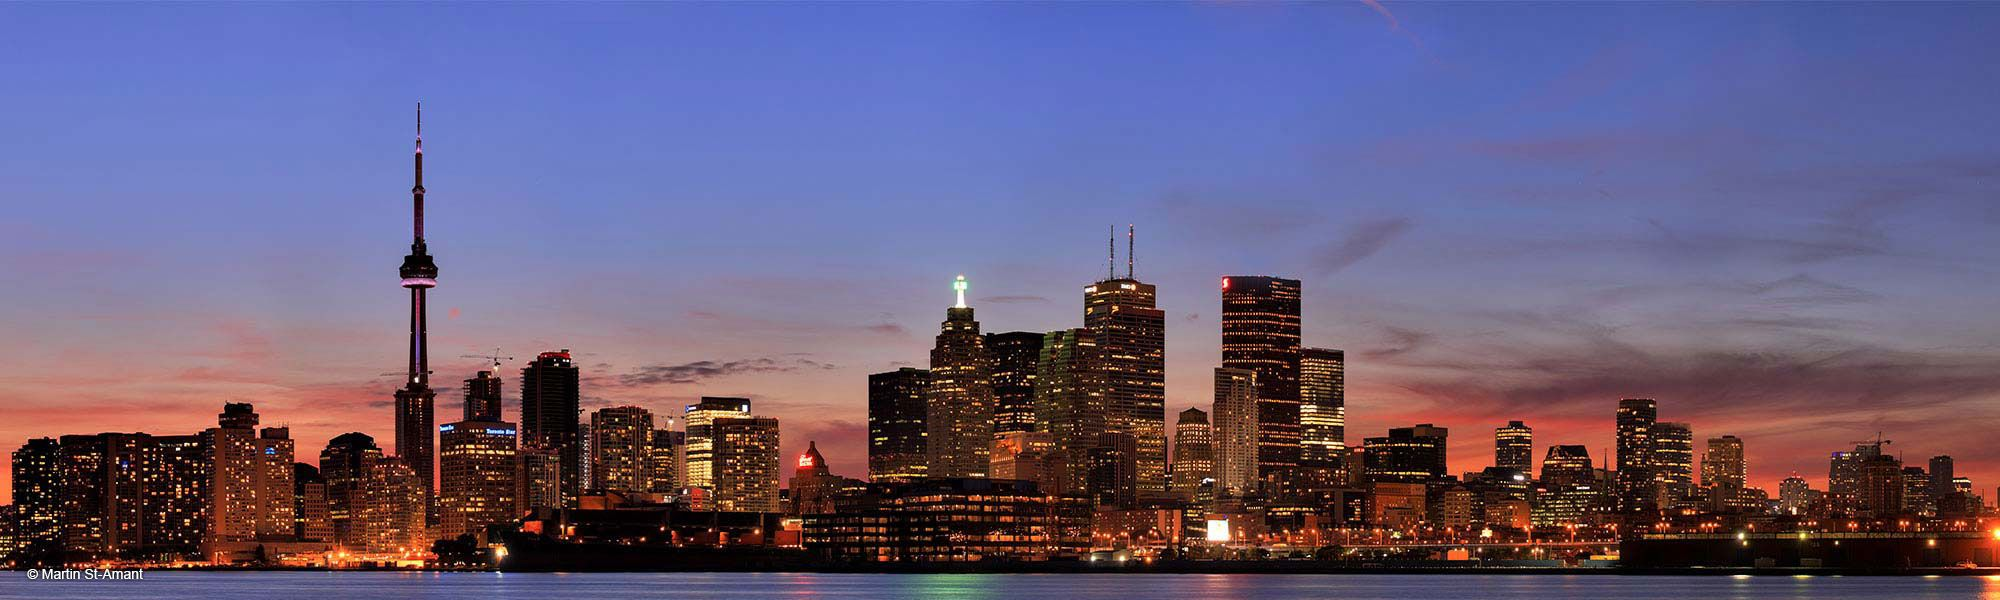 As one of canada's busiest cities, visit Toronto for the